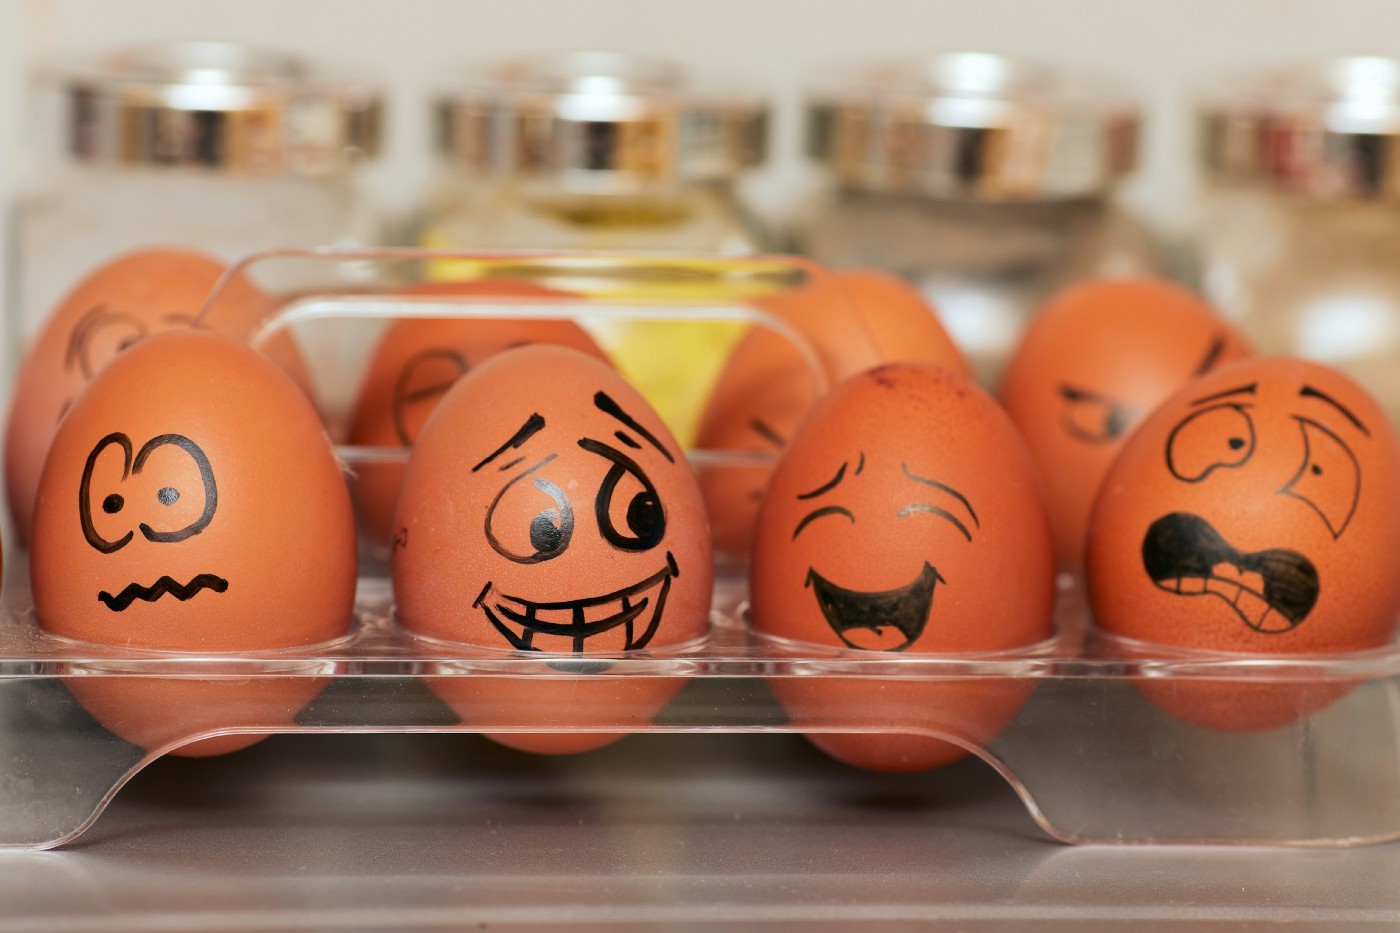 Four eggs with various emotive faces drawn on with sharpie